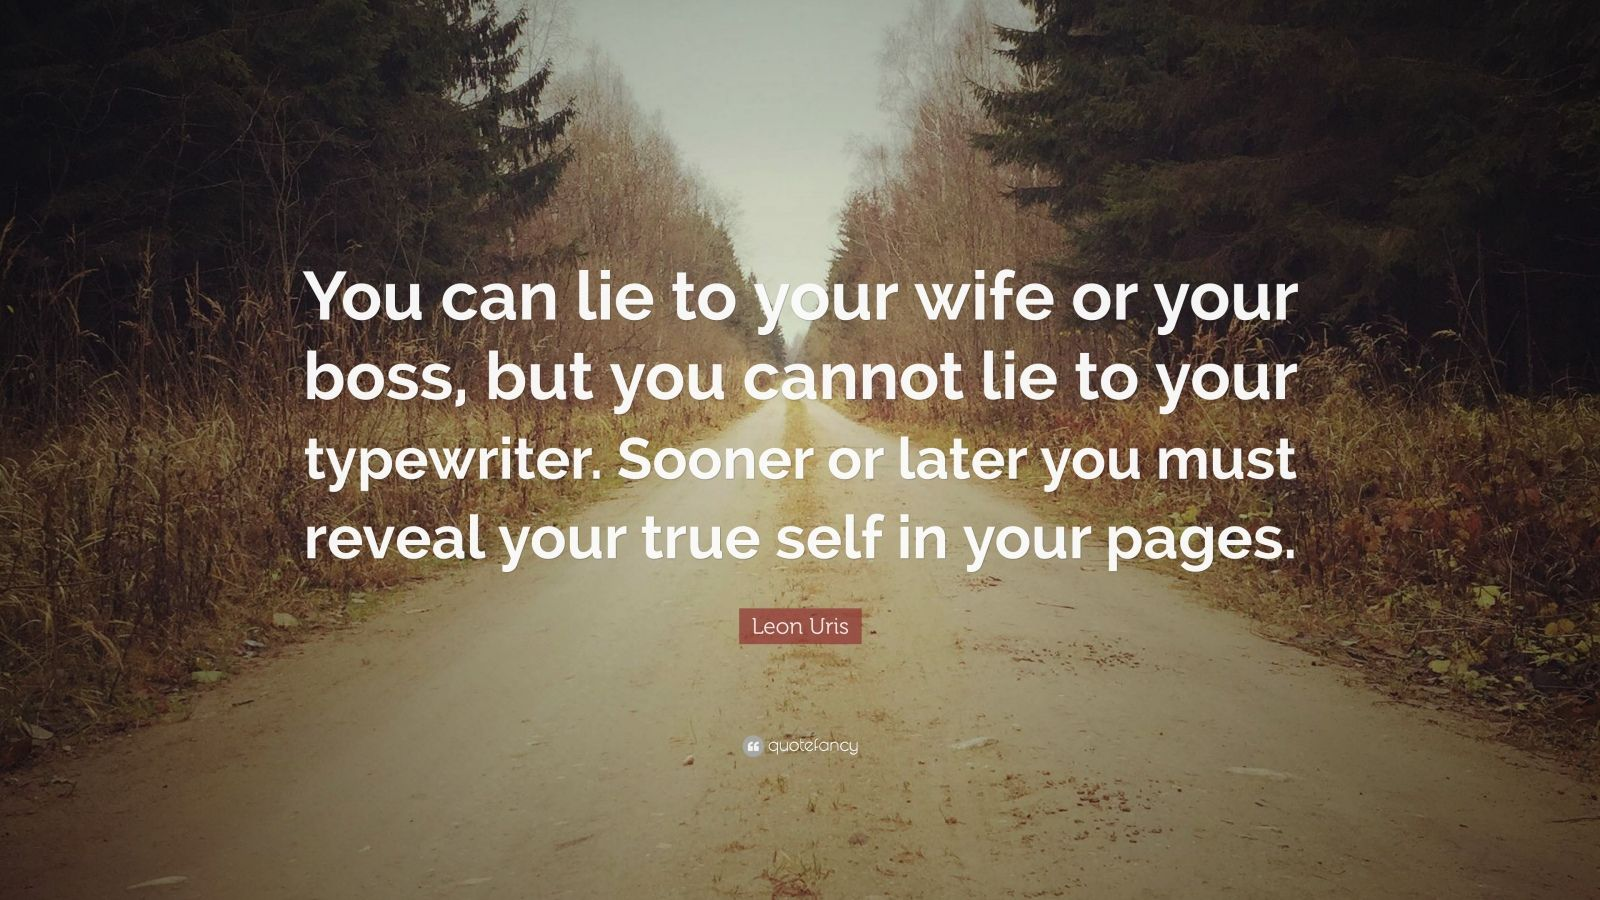 """Leon Uris Quote: """"You can lie to your wife or your boss, but you cannot lie to your typewriter. Sooner or later you must reveal your true self in your pages."""""""